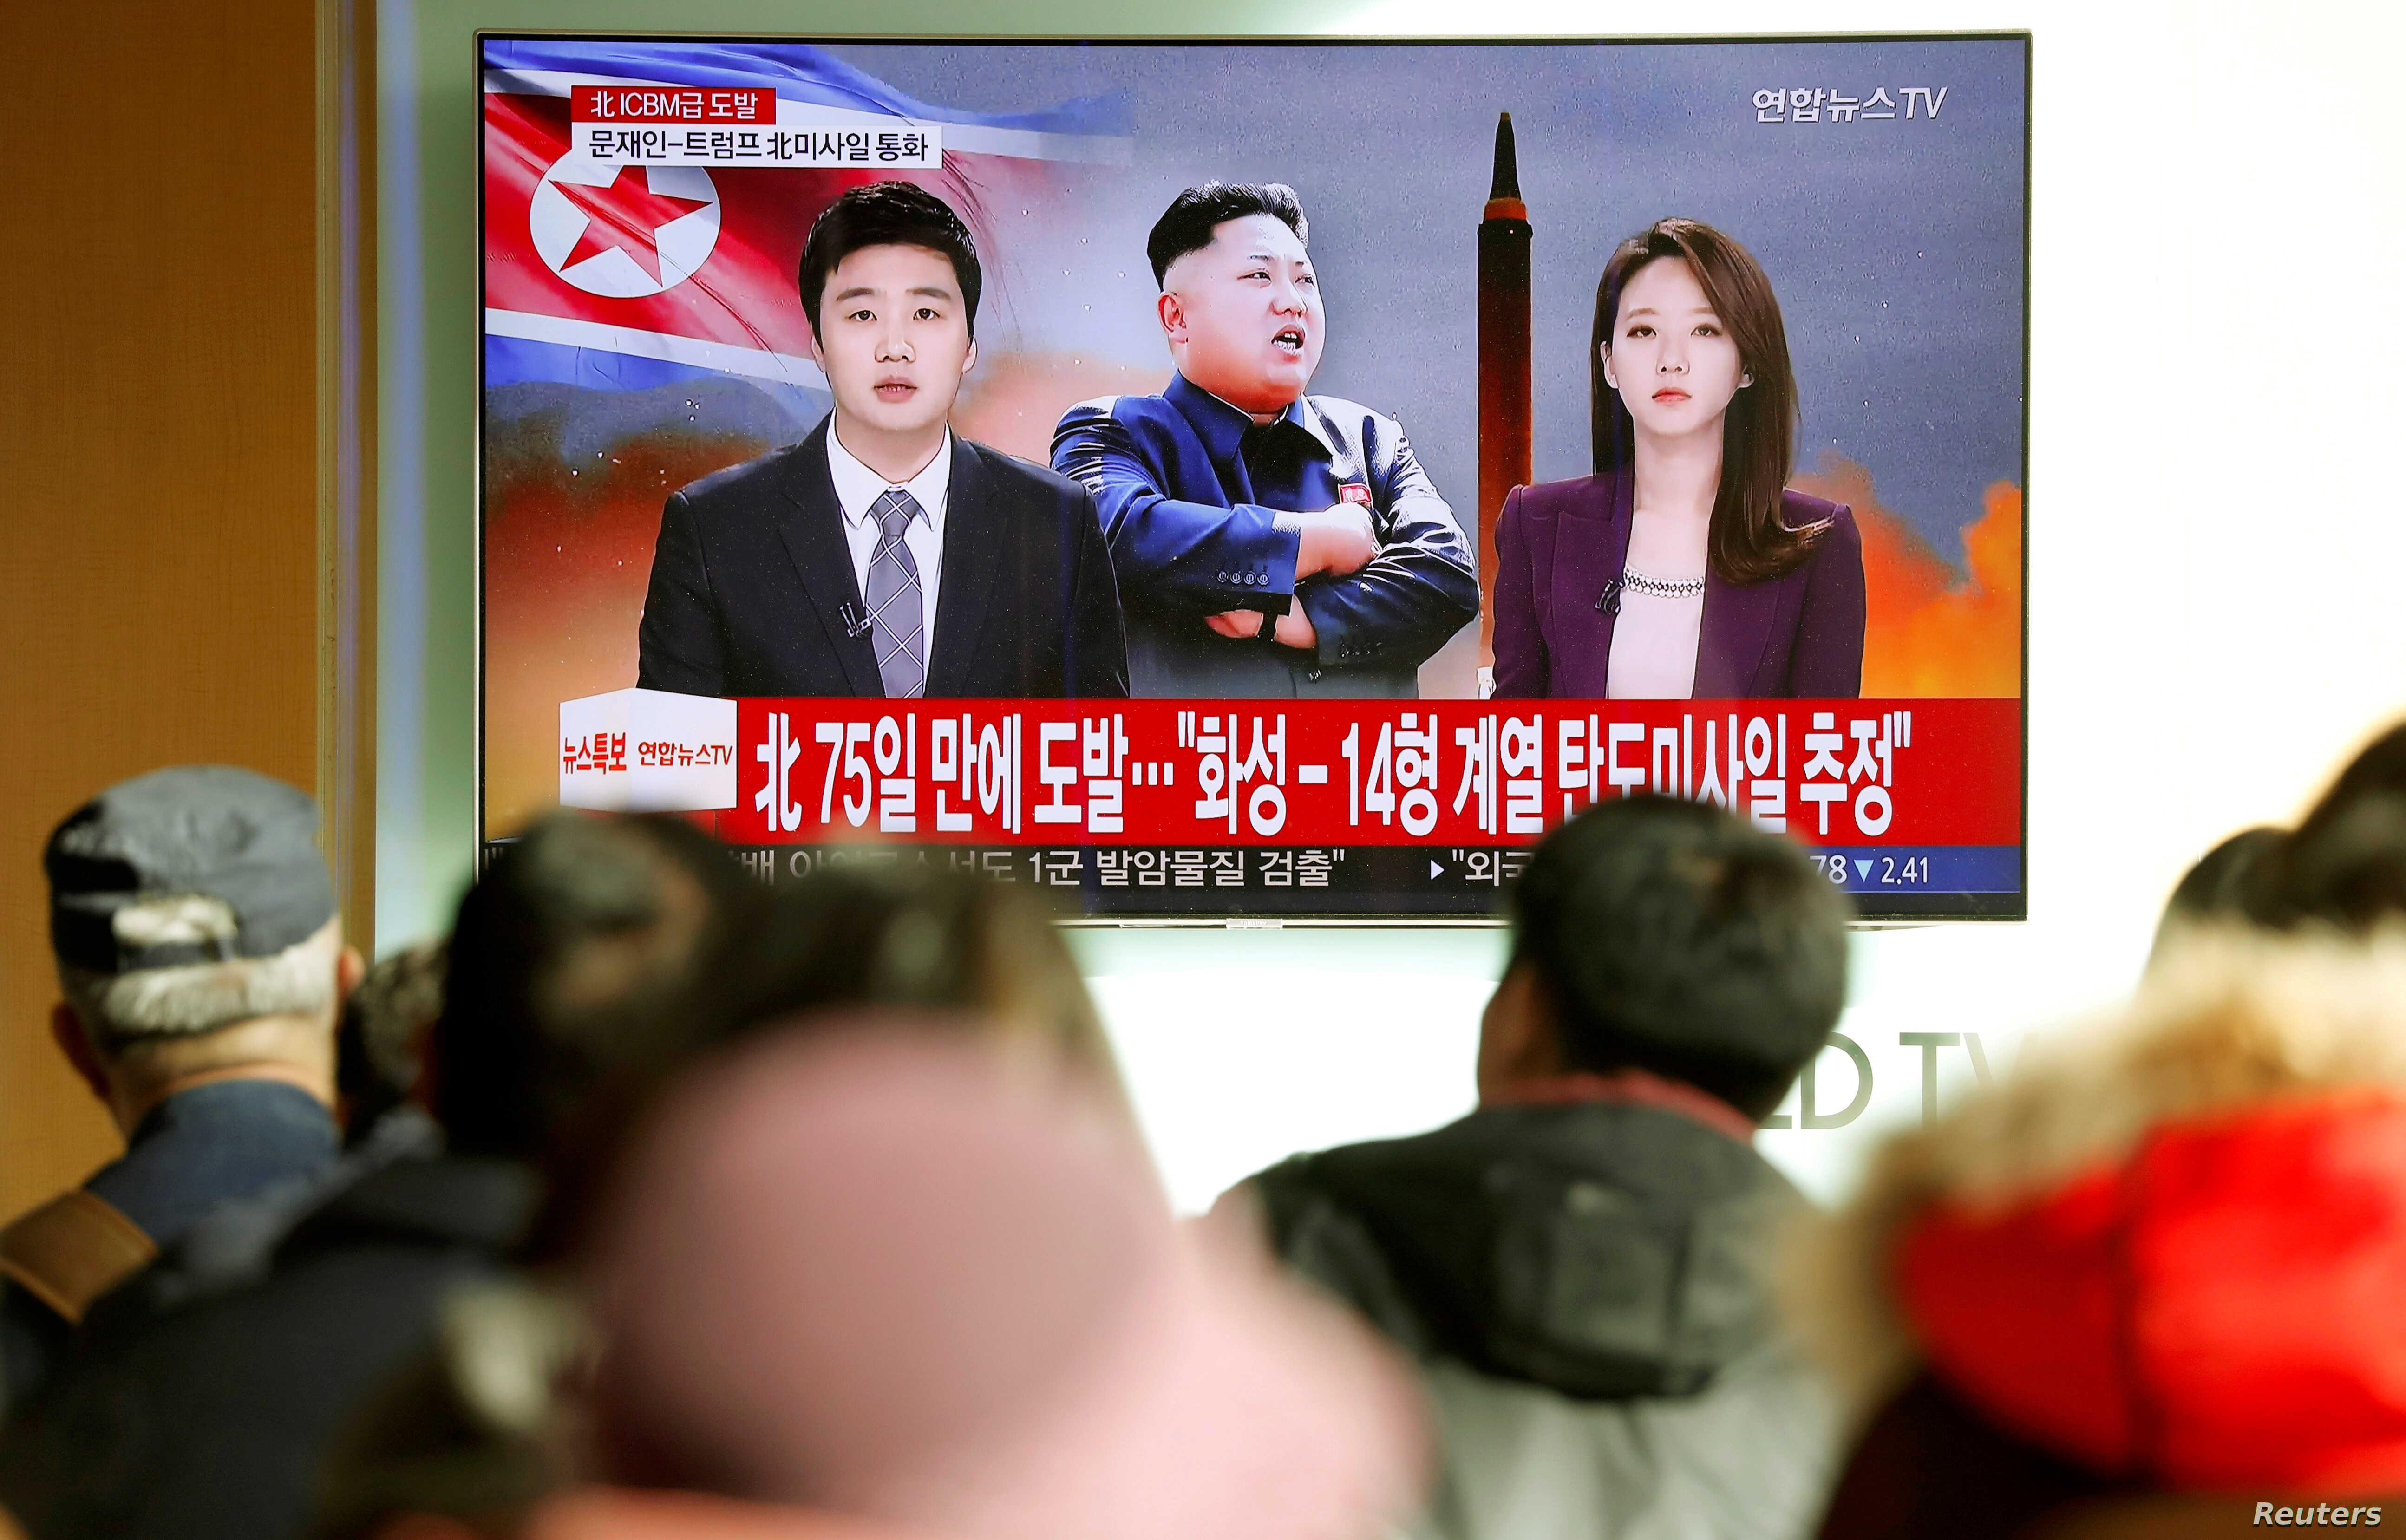 North Korea: 'Peace Offensive' With US, South Korea Shows